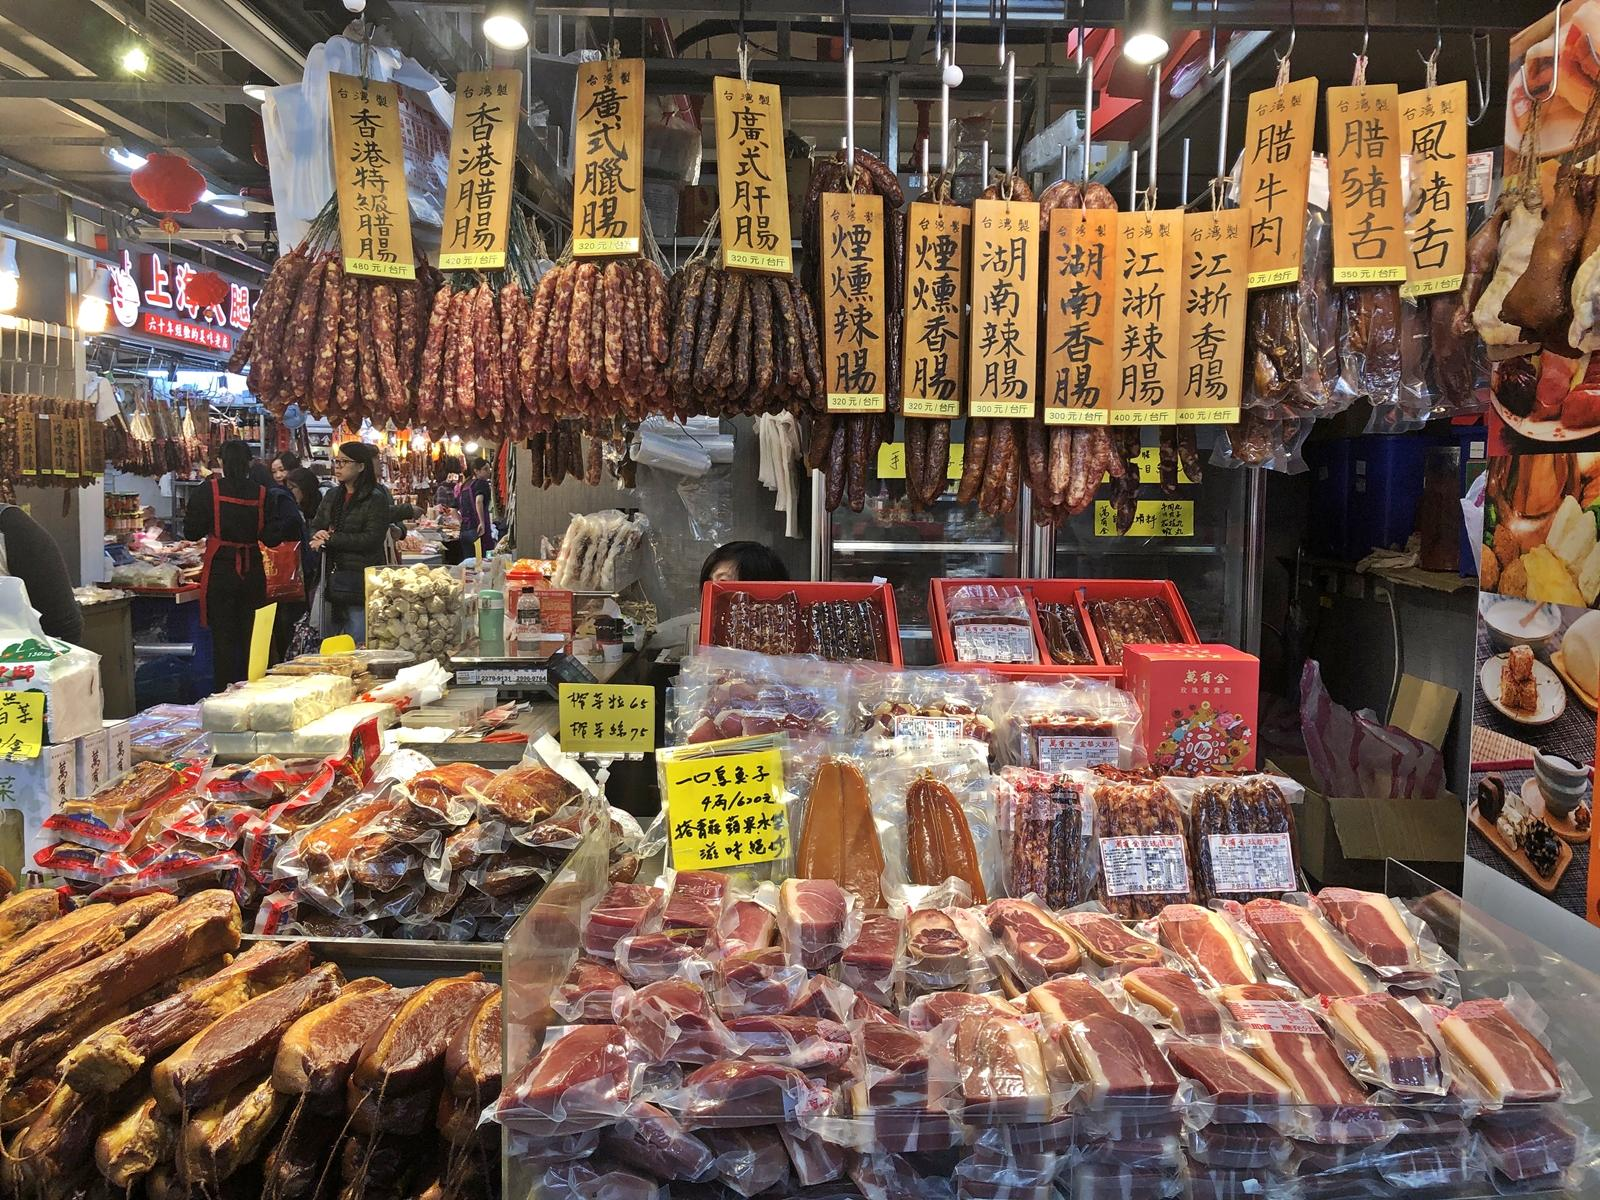 Meat products such as sausages and Jinhua Ham (Chinese ham) are popular New Year items in Taiwan. (Image: Billy Shyu / Vision Times)